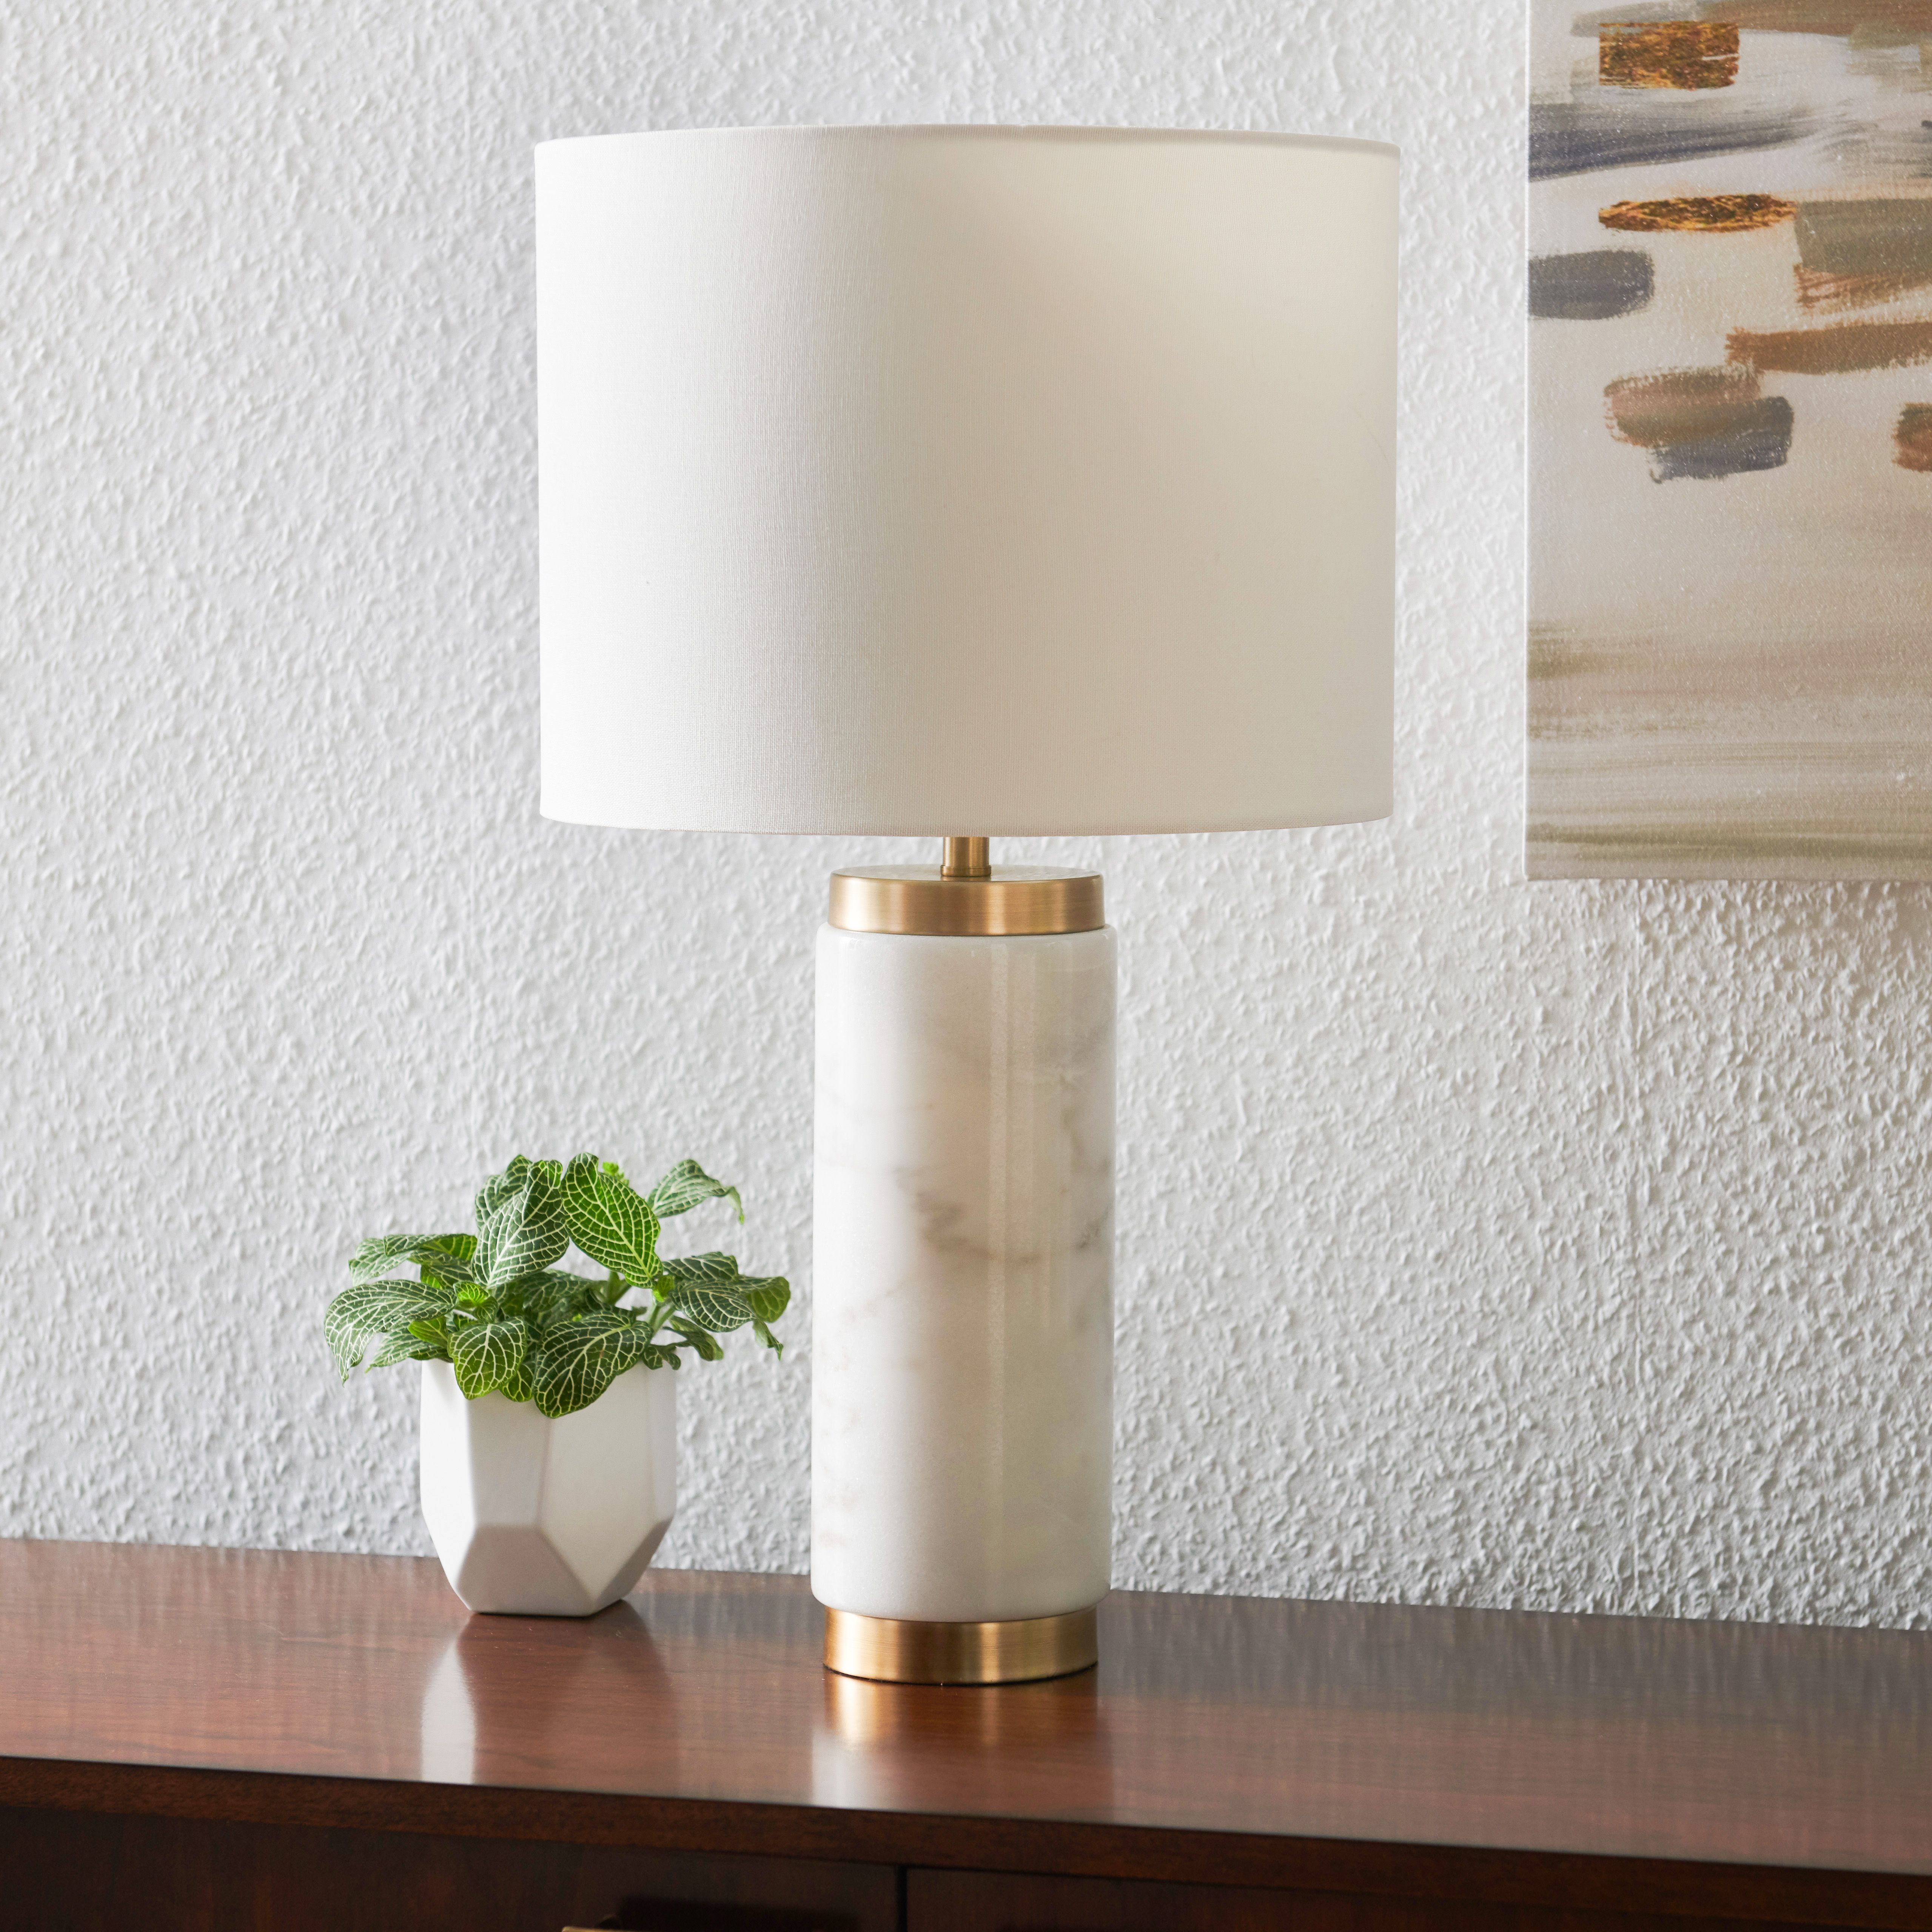 Home Marble Table Lamp Table Lamp Lamp